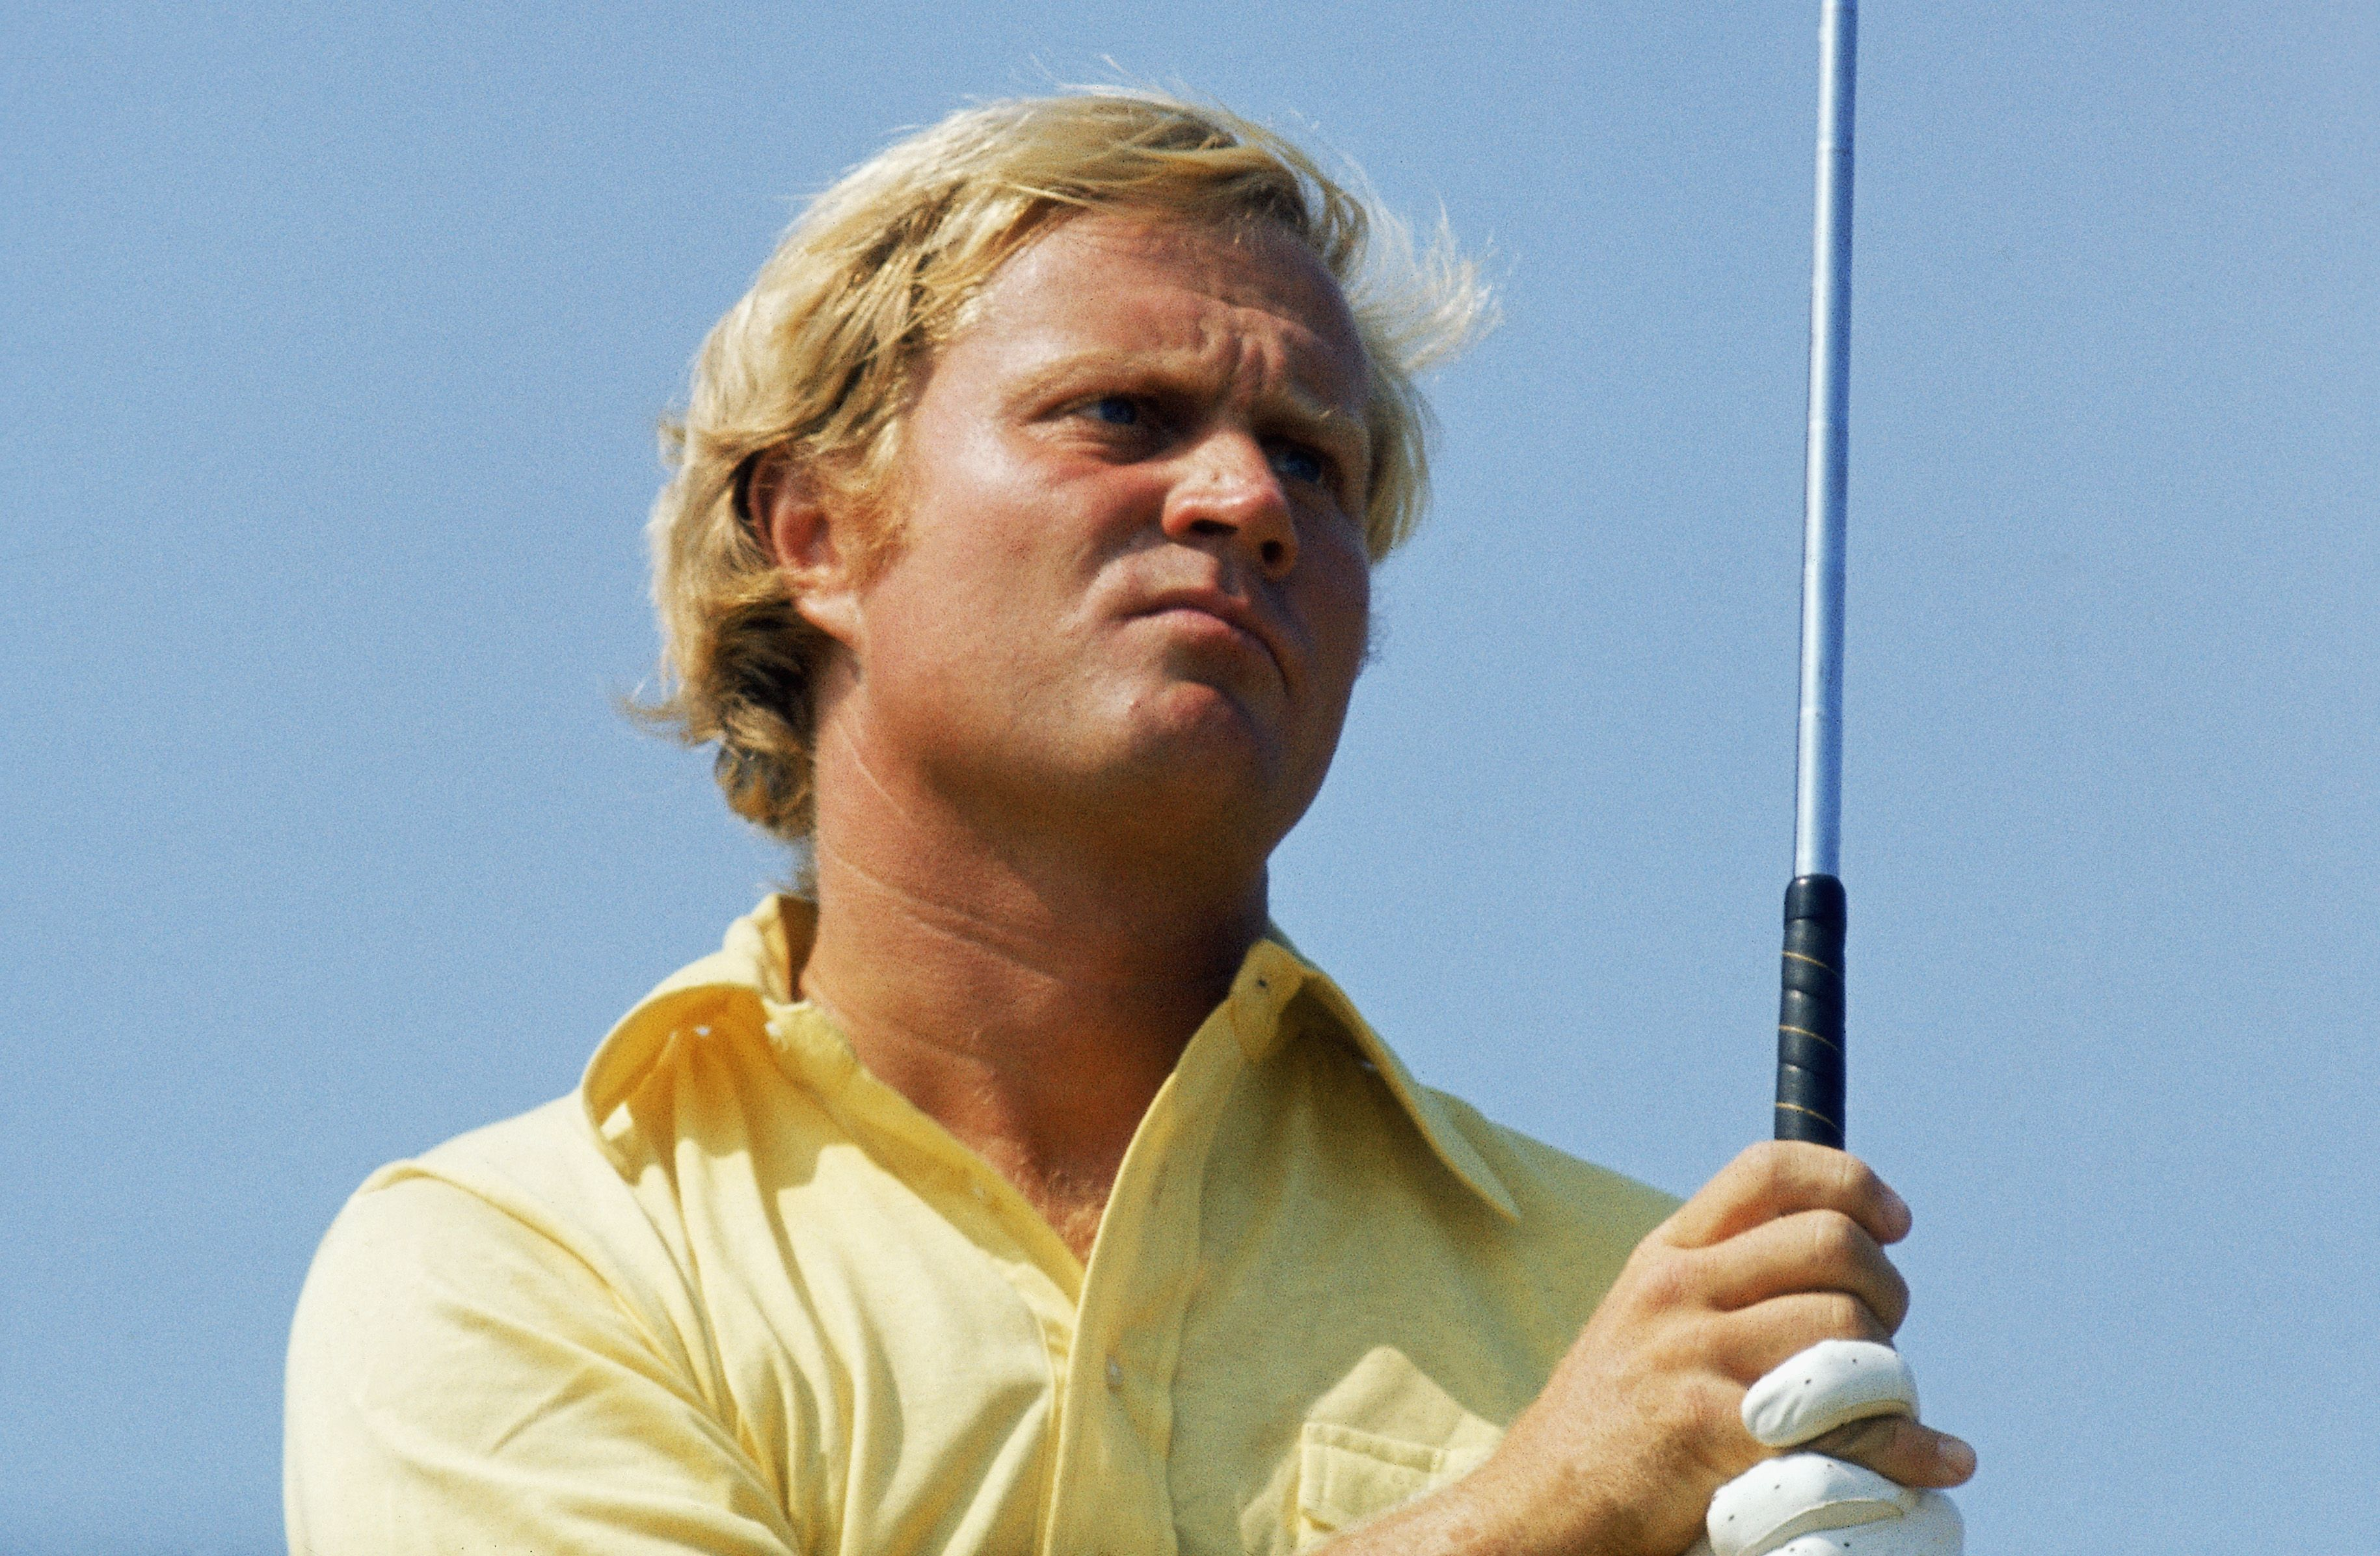 Jack Nicklaus Wins All His Tournament Victories